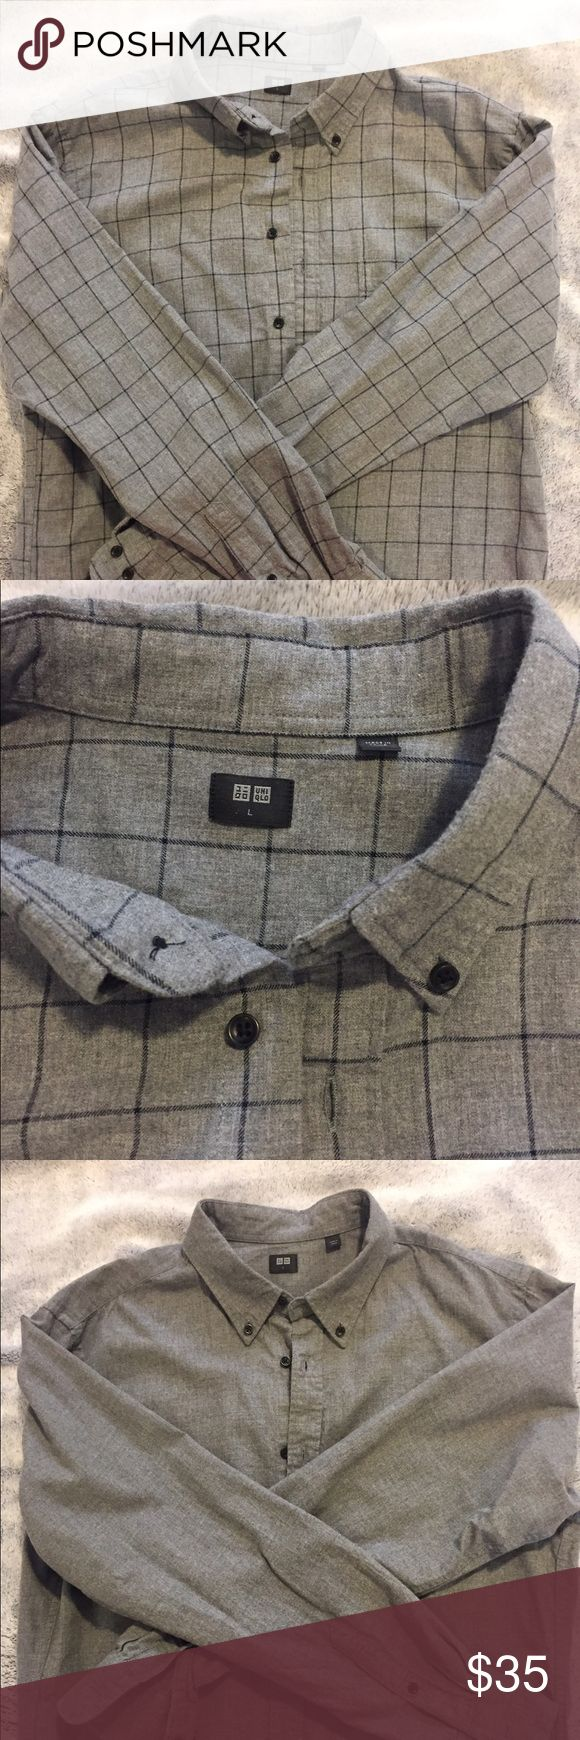 UNIQLO Flannel Shirts for men (3 of them) 3 different flannel shirts for men!! Super soft. All three for $35 or each for $13. Just let me know :-) Uniqlo Shirts Casual Button Down Shirts